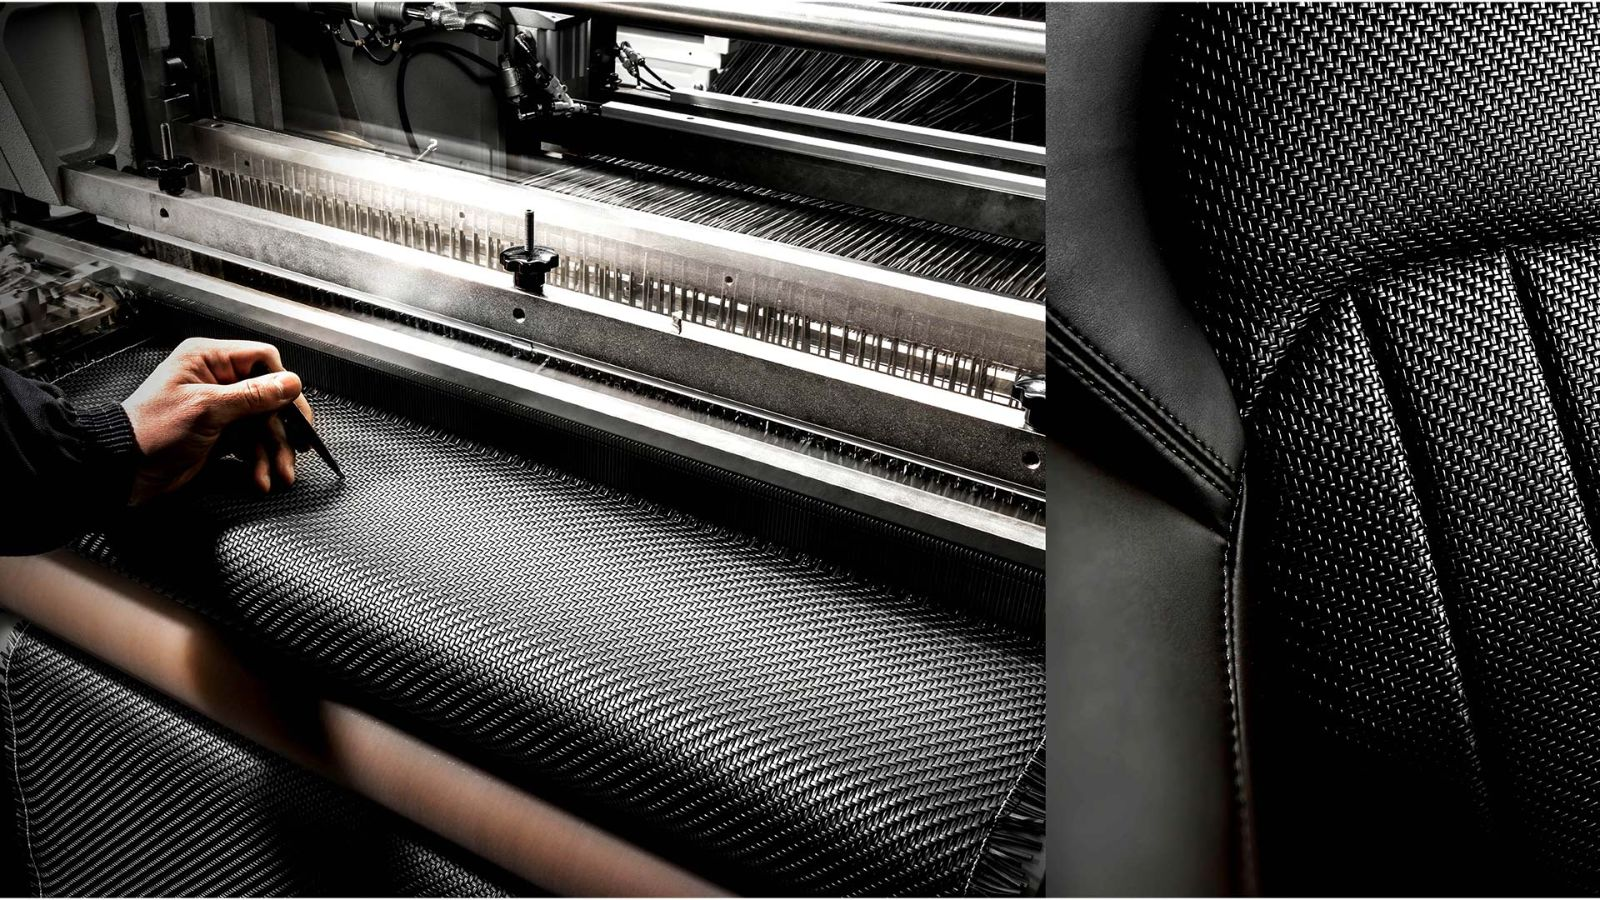 Maserati Zegna Pelletessuta interiors - Working at the weaving loom